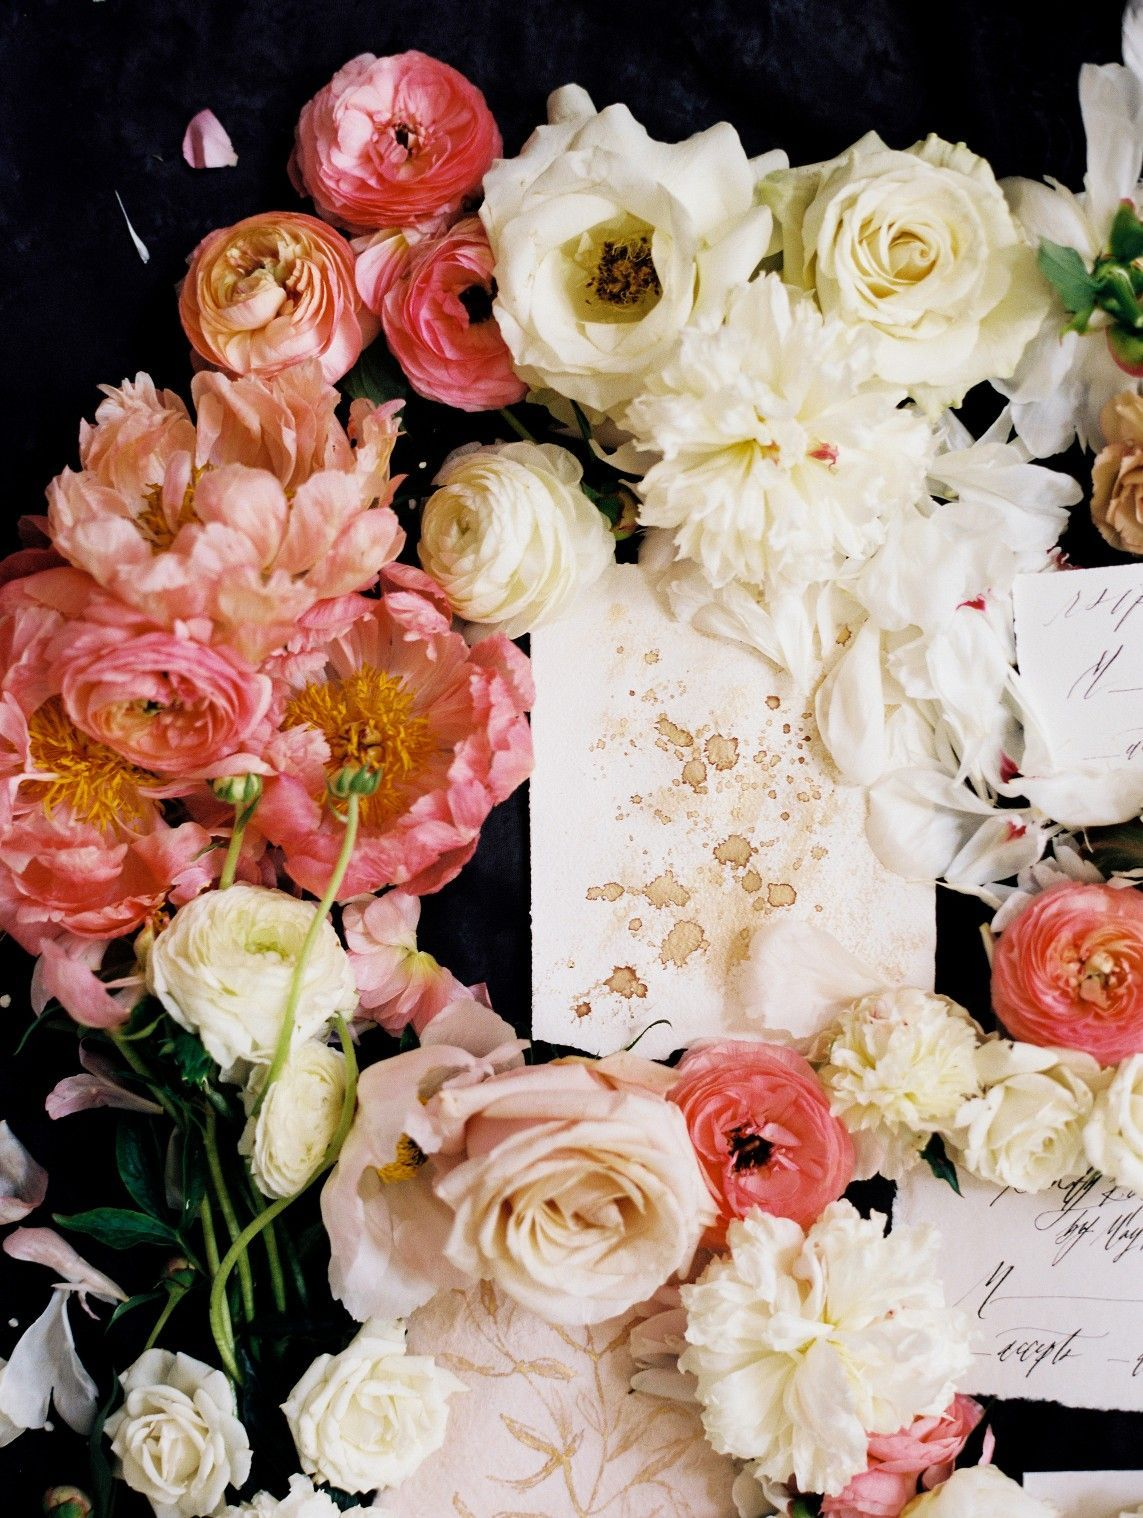 It S A Wedding Flower Explosion Make Sure You Don T Miss This Amazing Pink And White Flat Lay Is By Far The Gest That